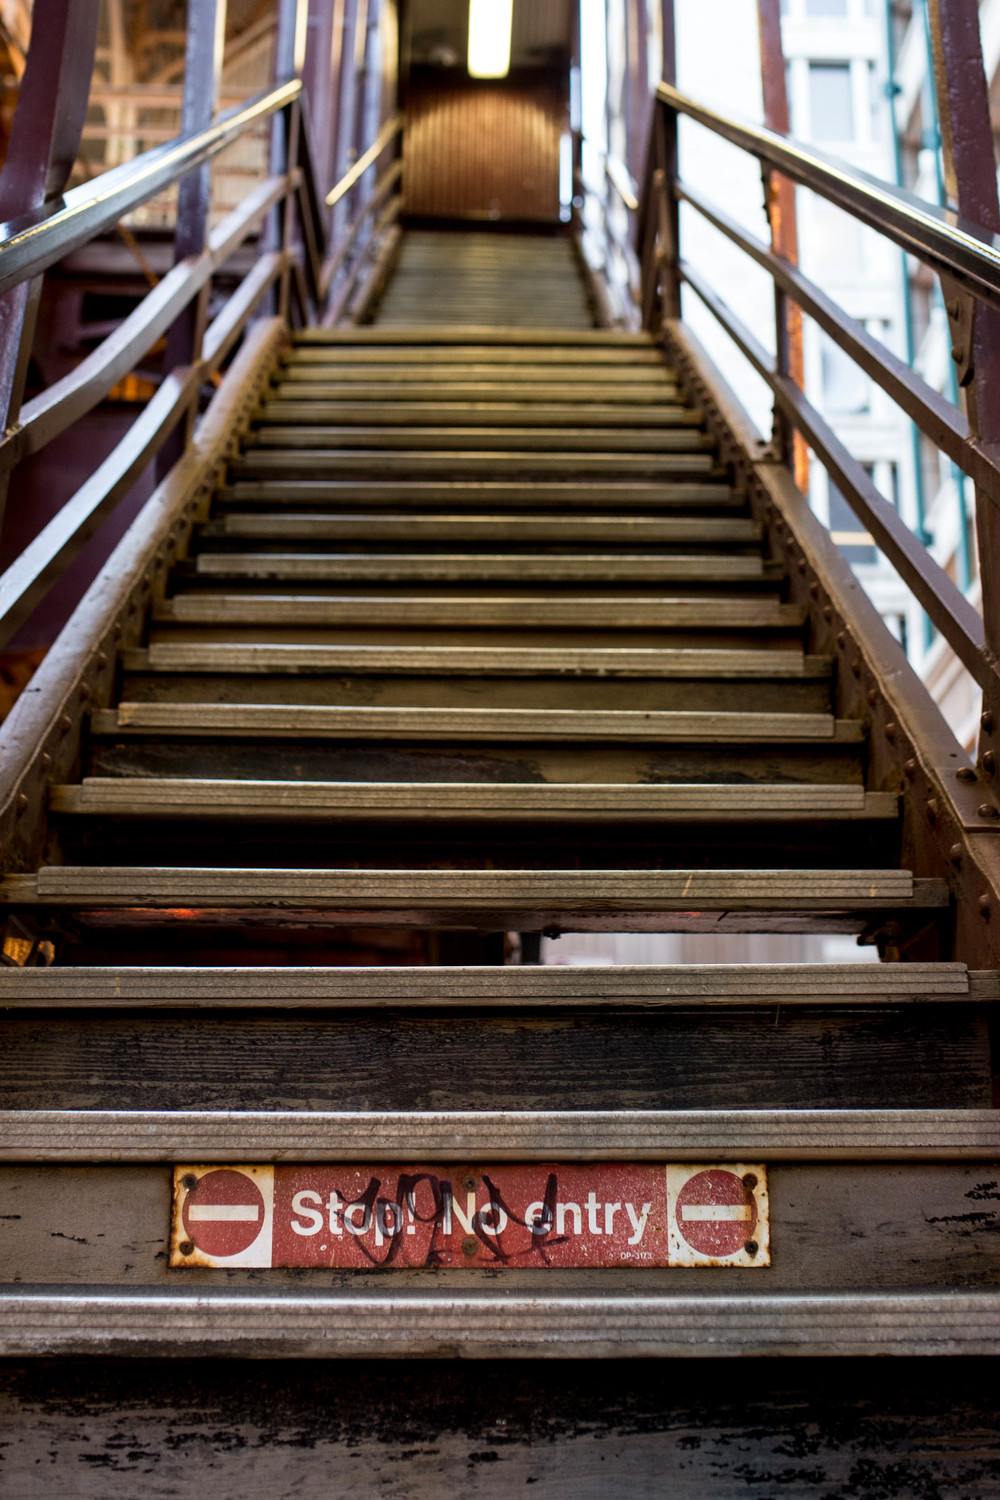 Stop! No entry. Yeah, right. Not anymore. Not for those who choose to #ClimbYourOwnLadder.